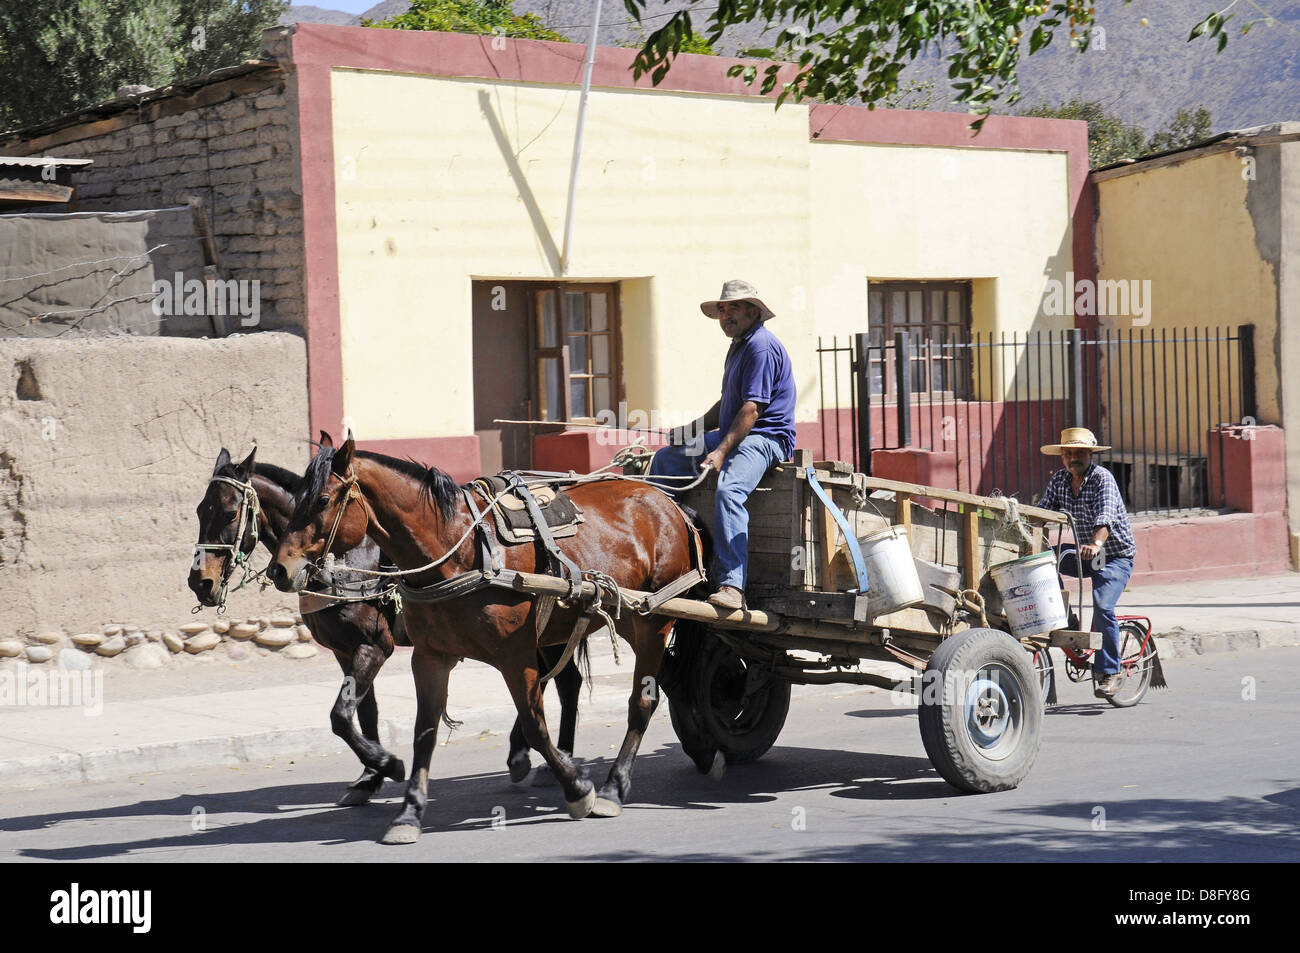 Horse drawn carriage - Stock Image